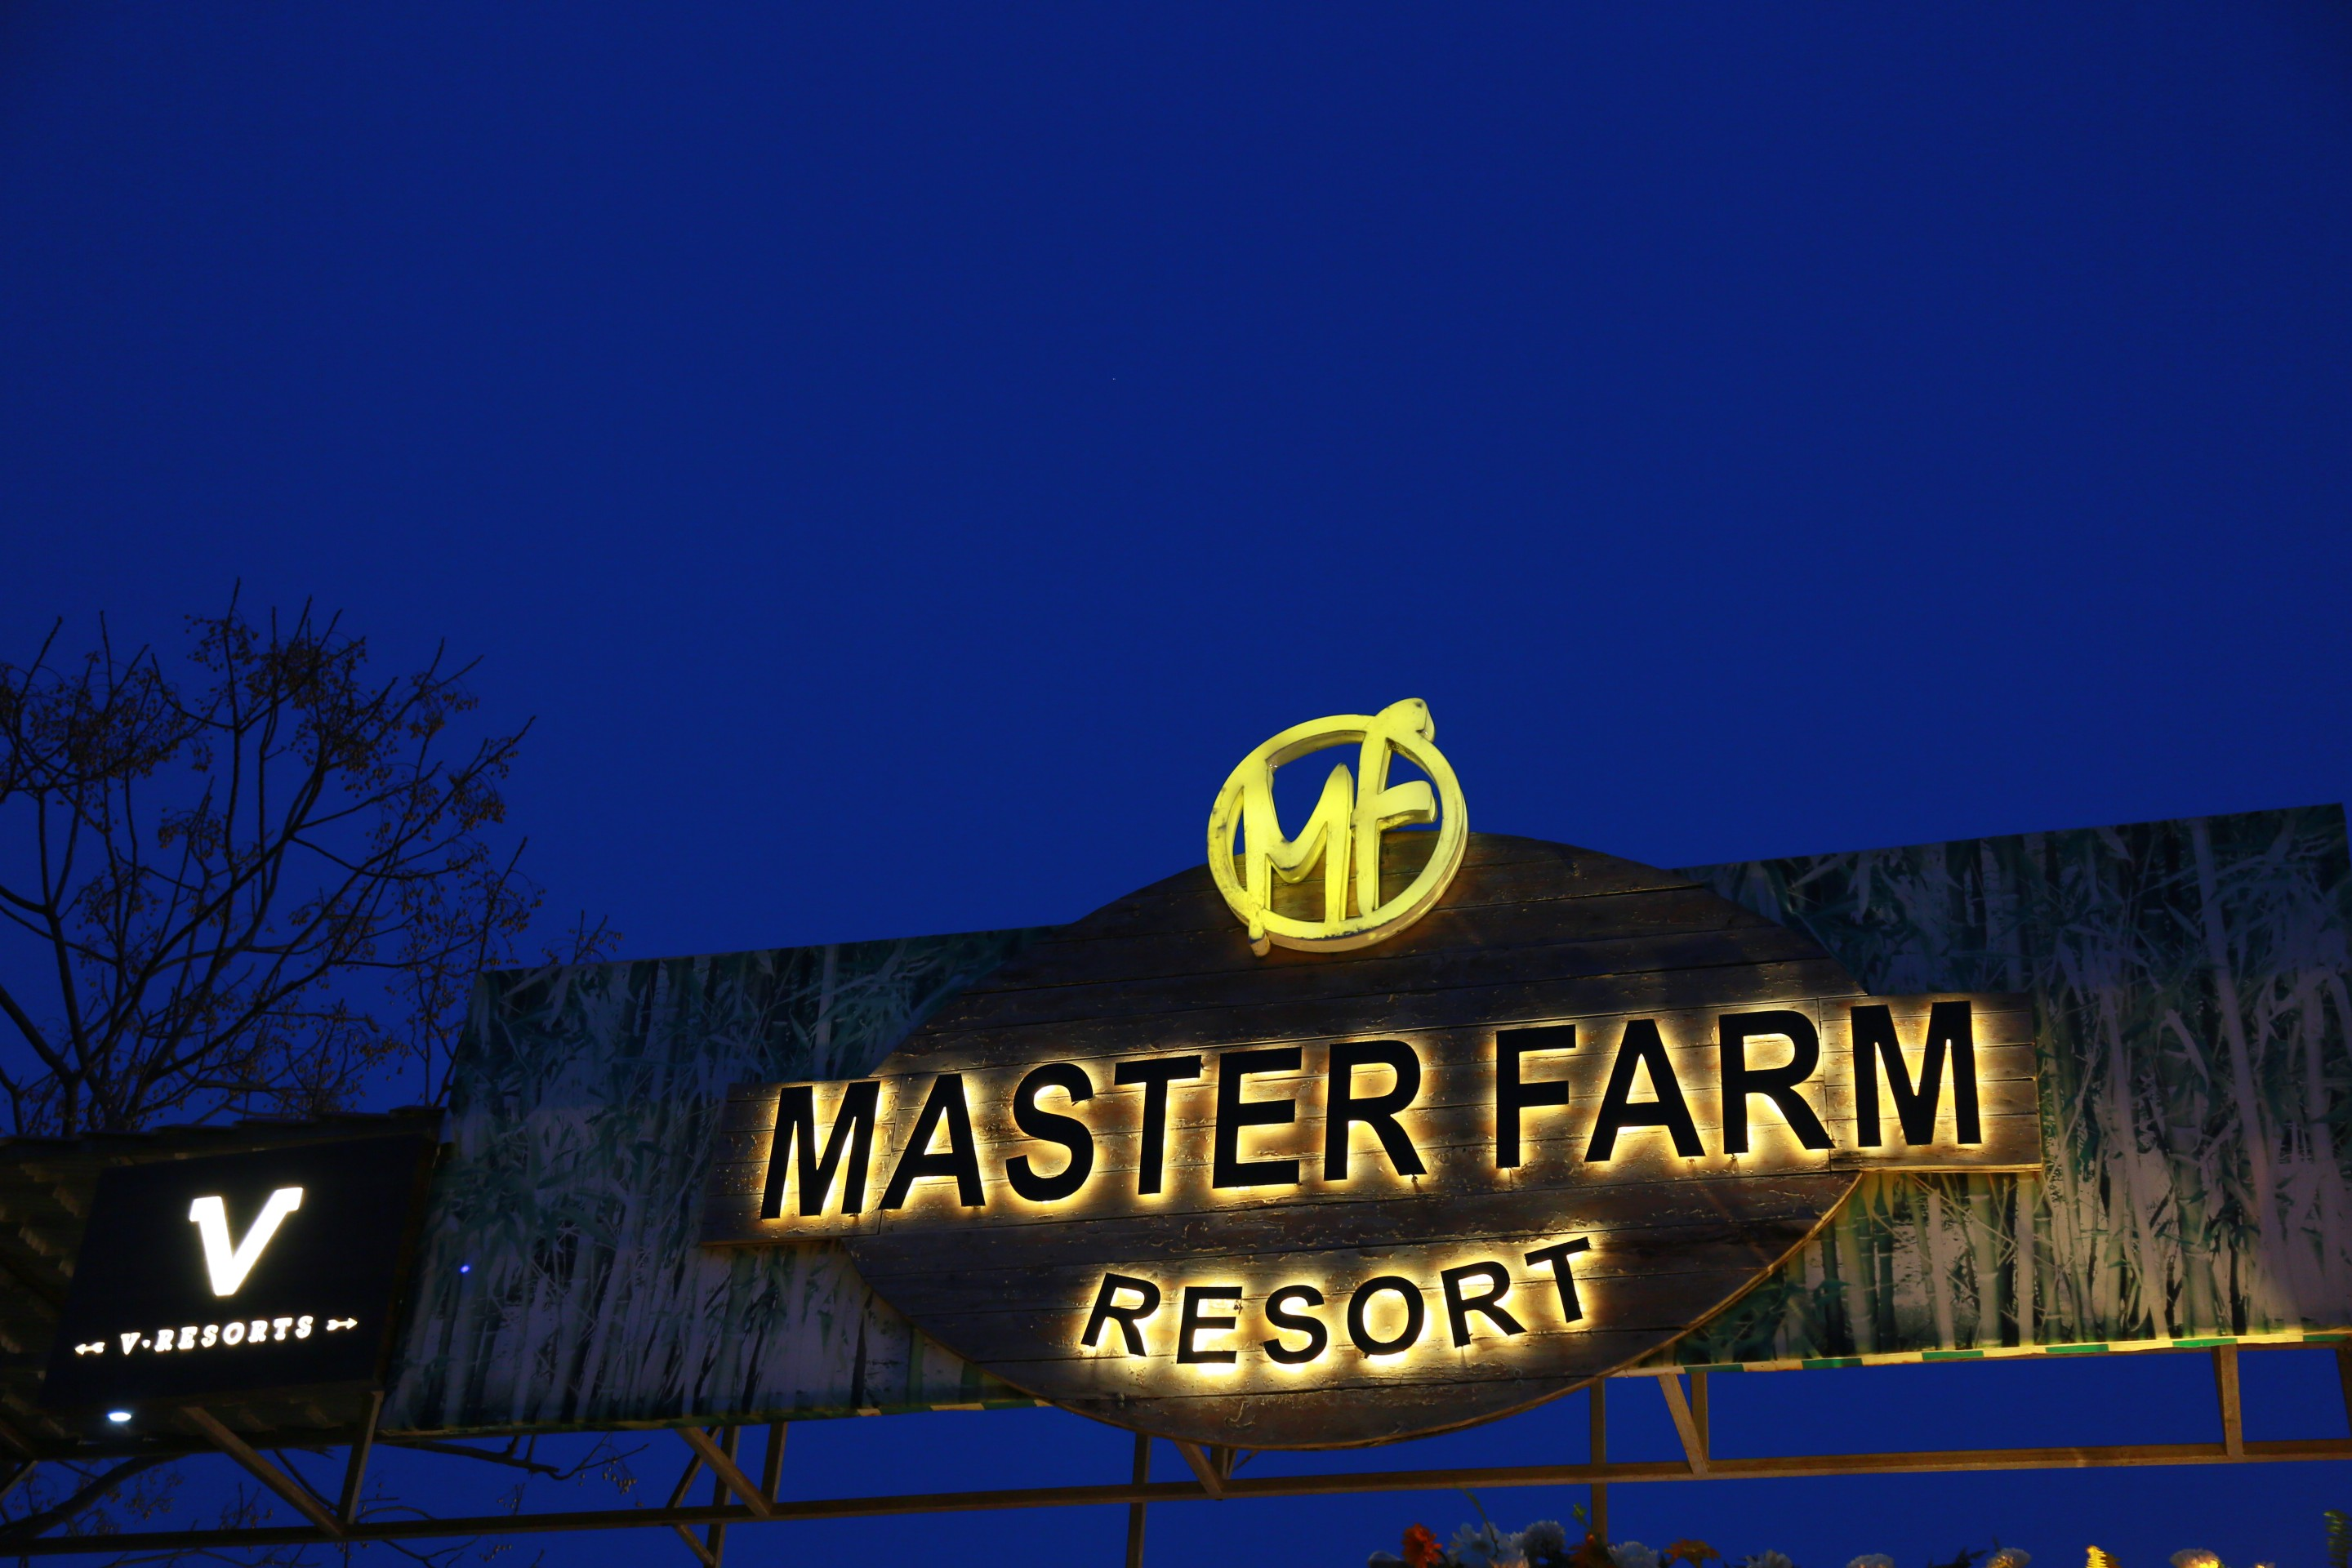 The Master Farm Resort